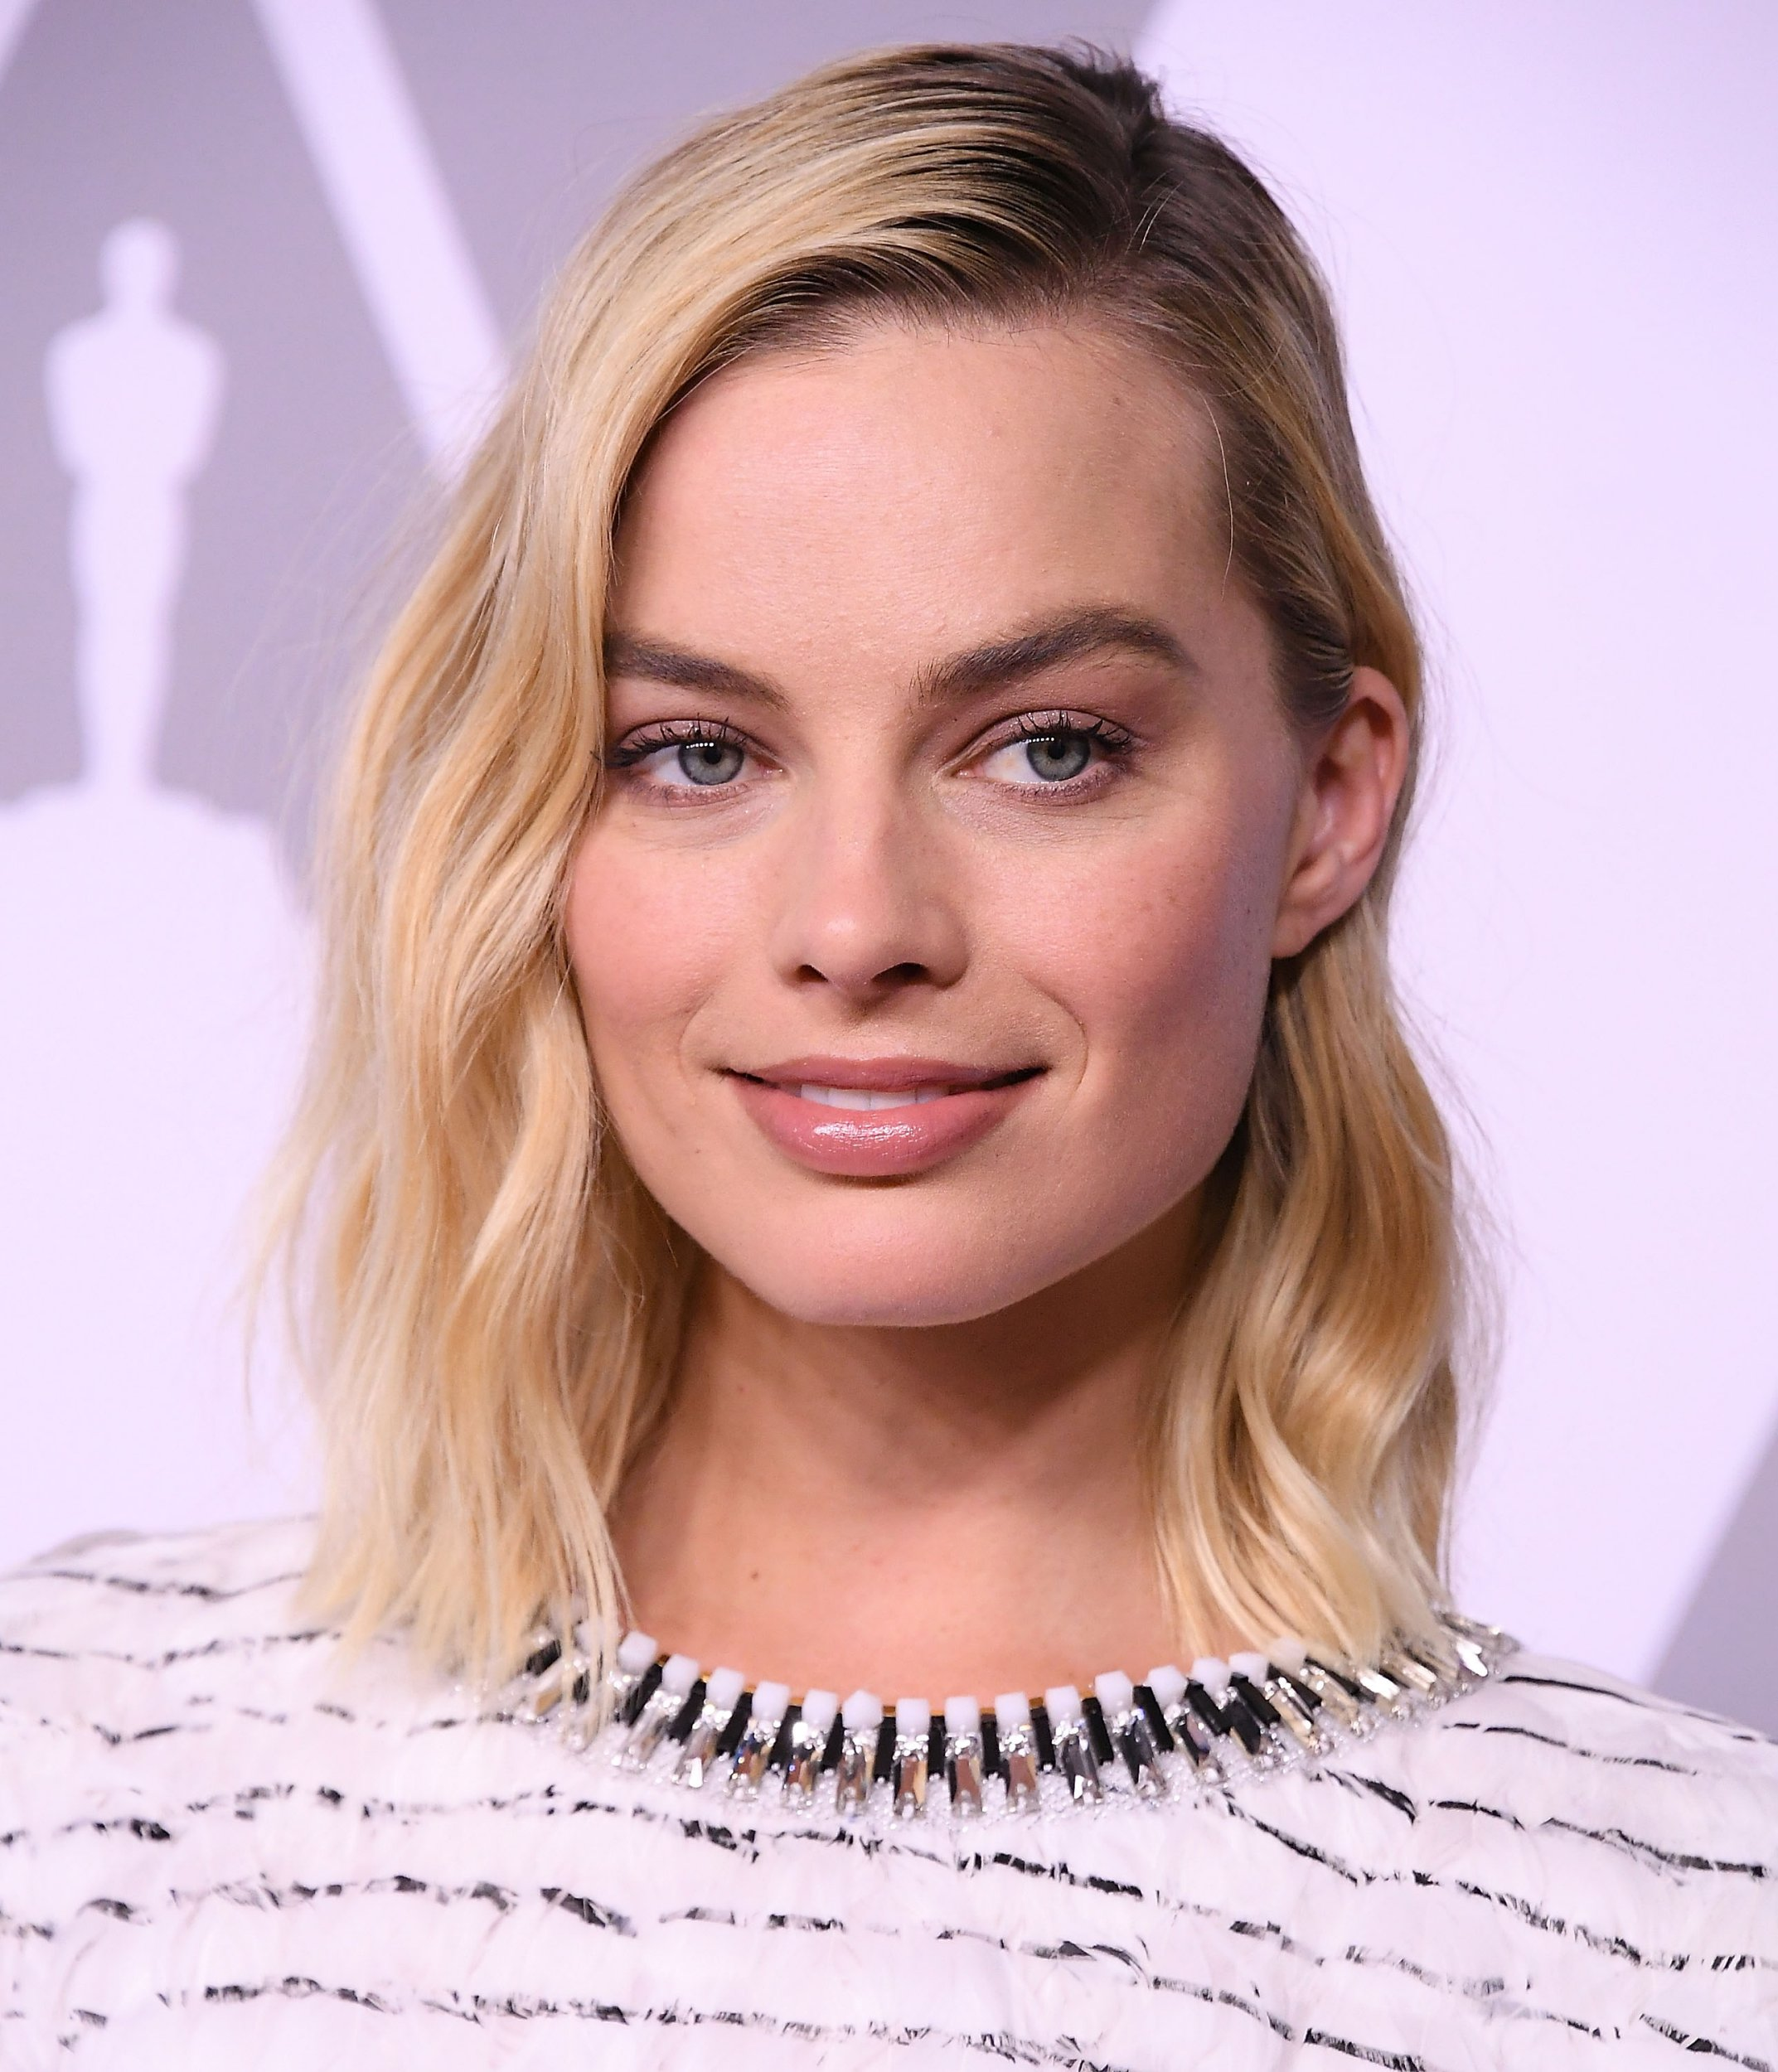 BEVERLY HILLS, CA - FEBRUARY 05: Margot Robbie arrives at the 90th Annual Academy Awards Nominee Luncheon at The Beverly Hilton Hotel on February 5, 2018 in Beverly Hills, California. (Photo by Steve Granitz/WireImage)